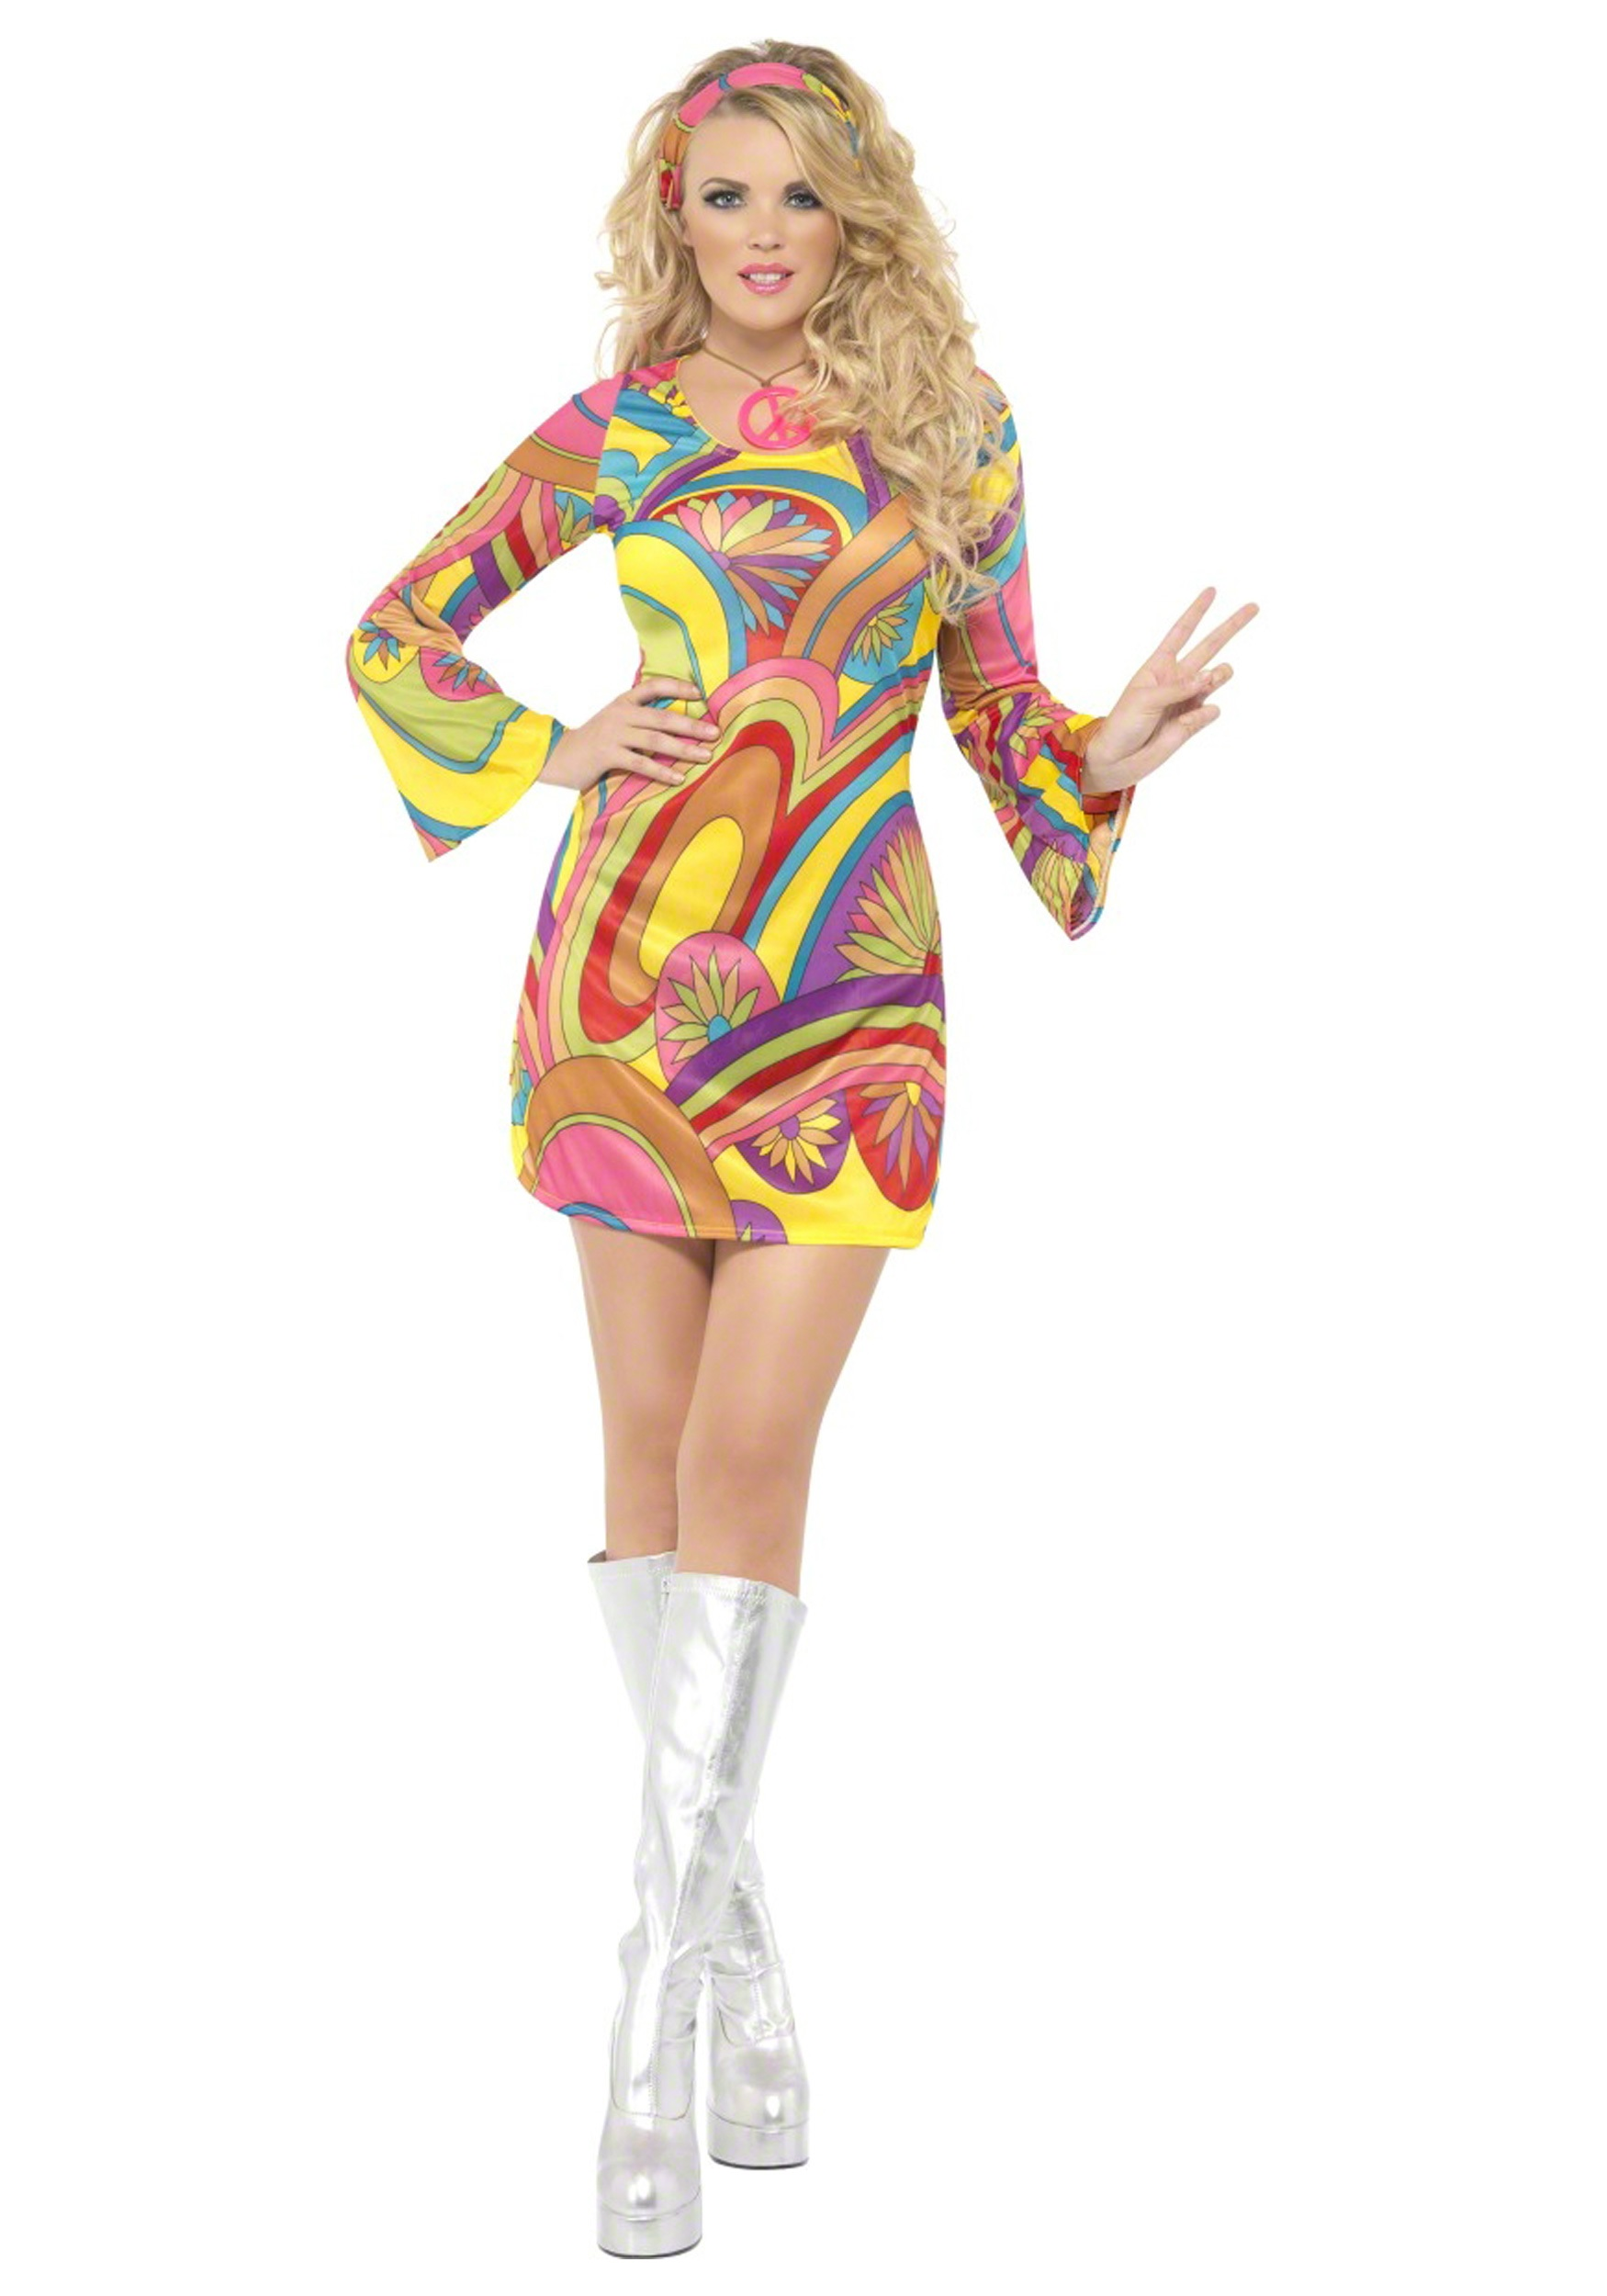 60s Sexy Flower Power Costume  sc 1 st  Halloween Costumes & 60s Sexy Flower Power Costume - Halloween Costumes